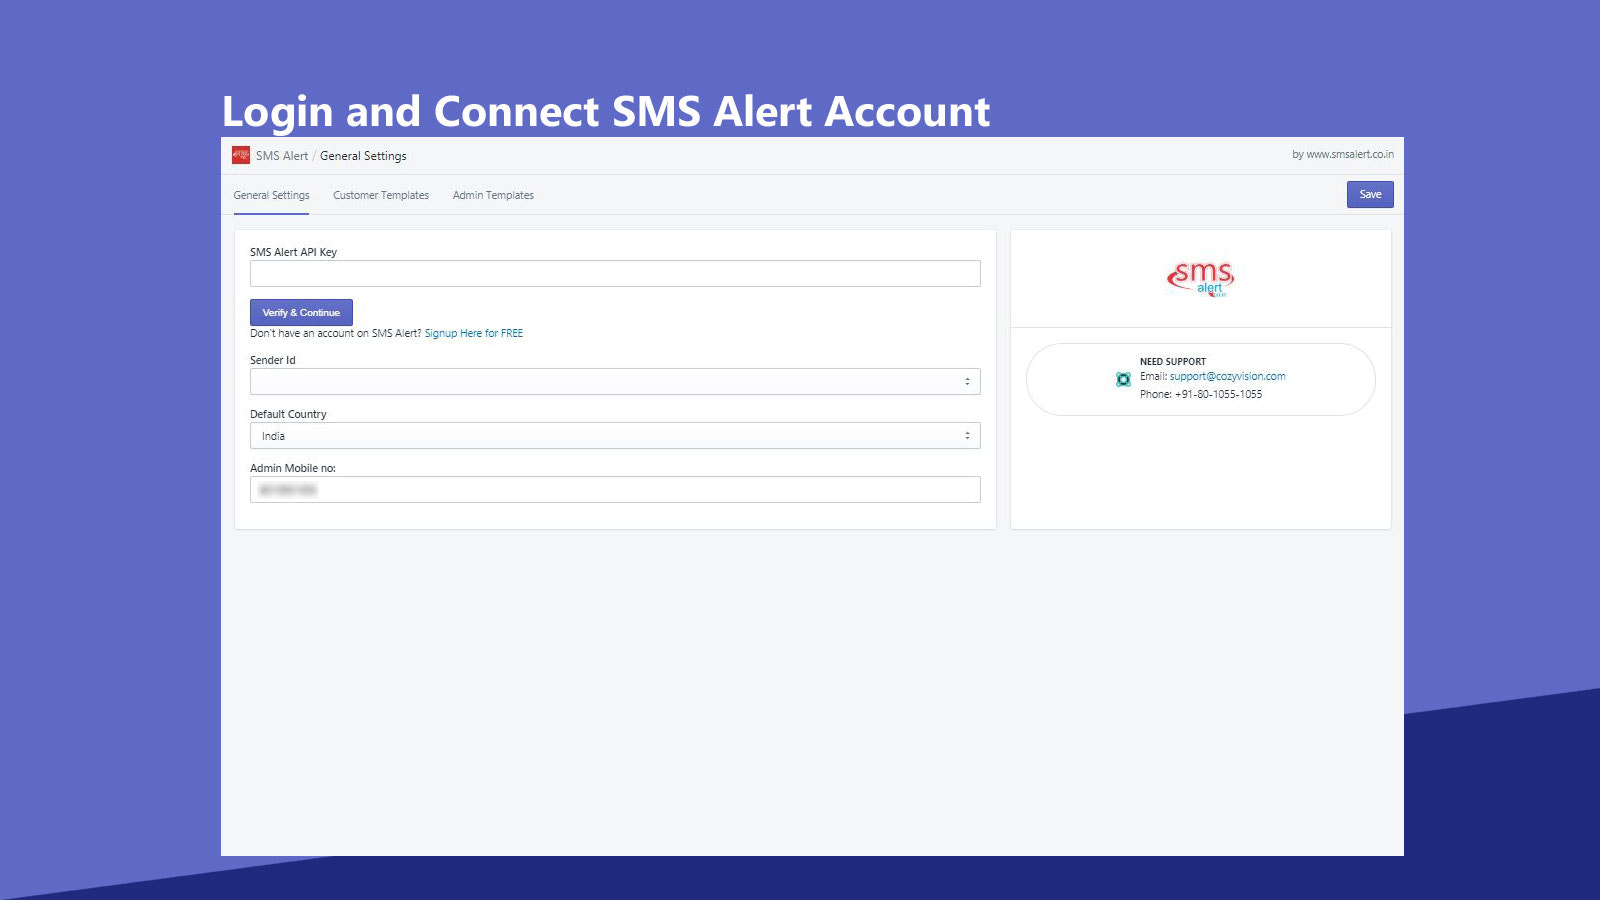 Login and Link to SMS Alert